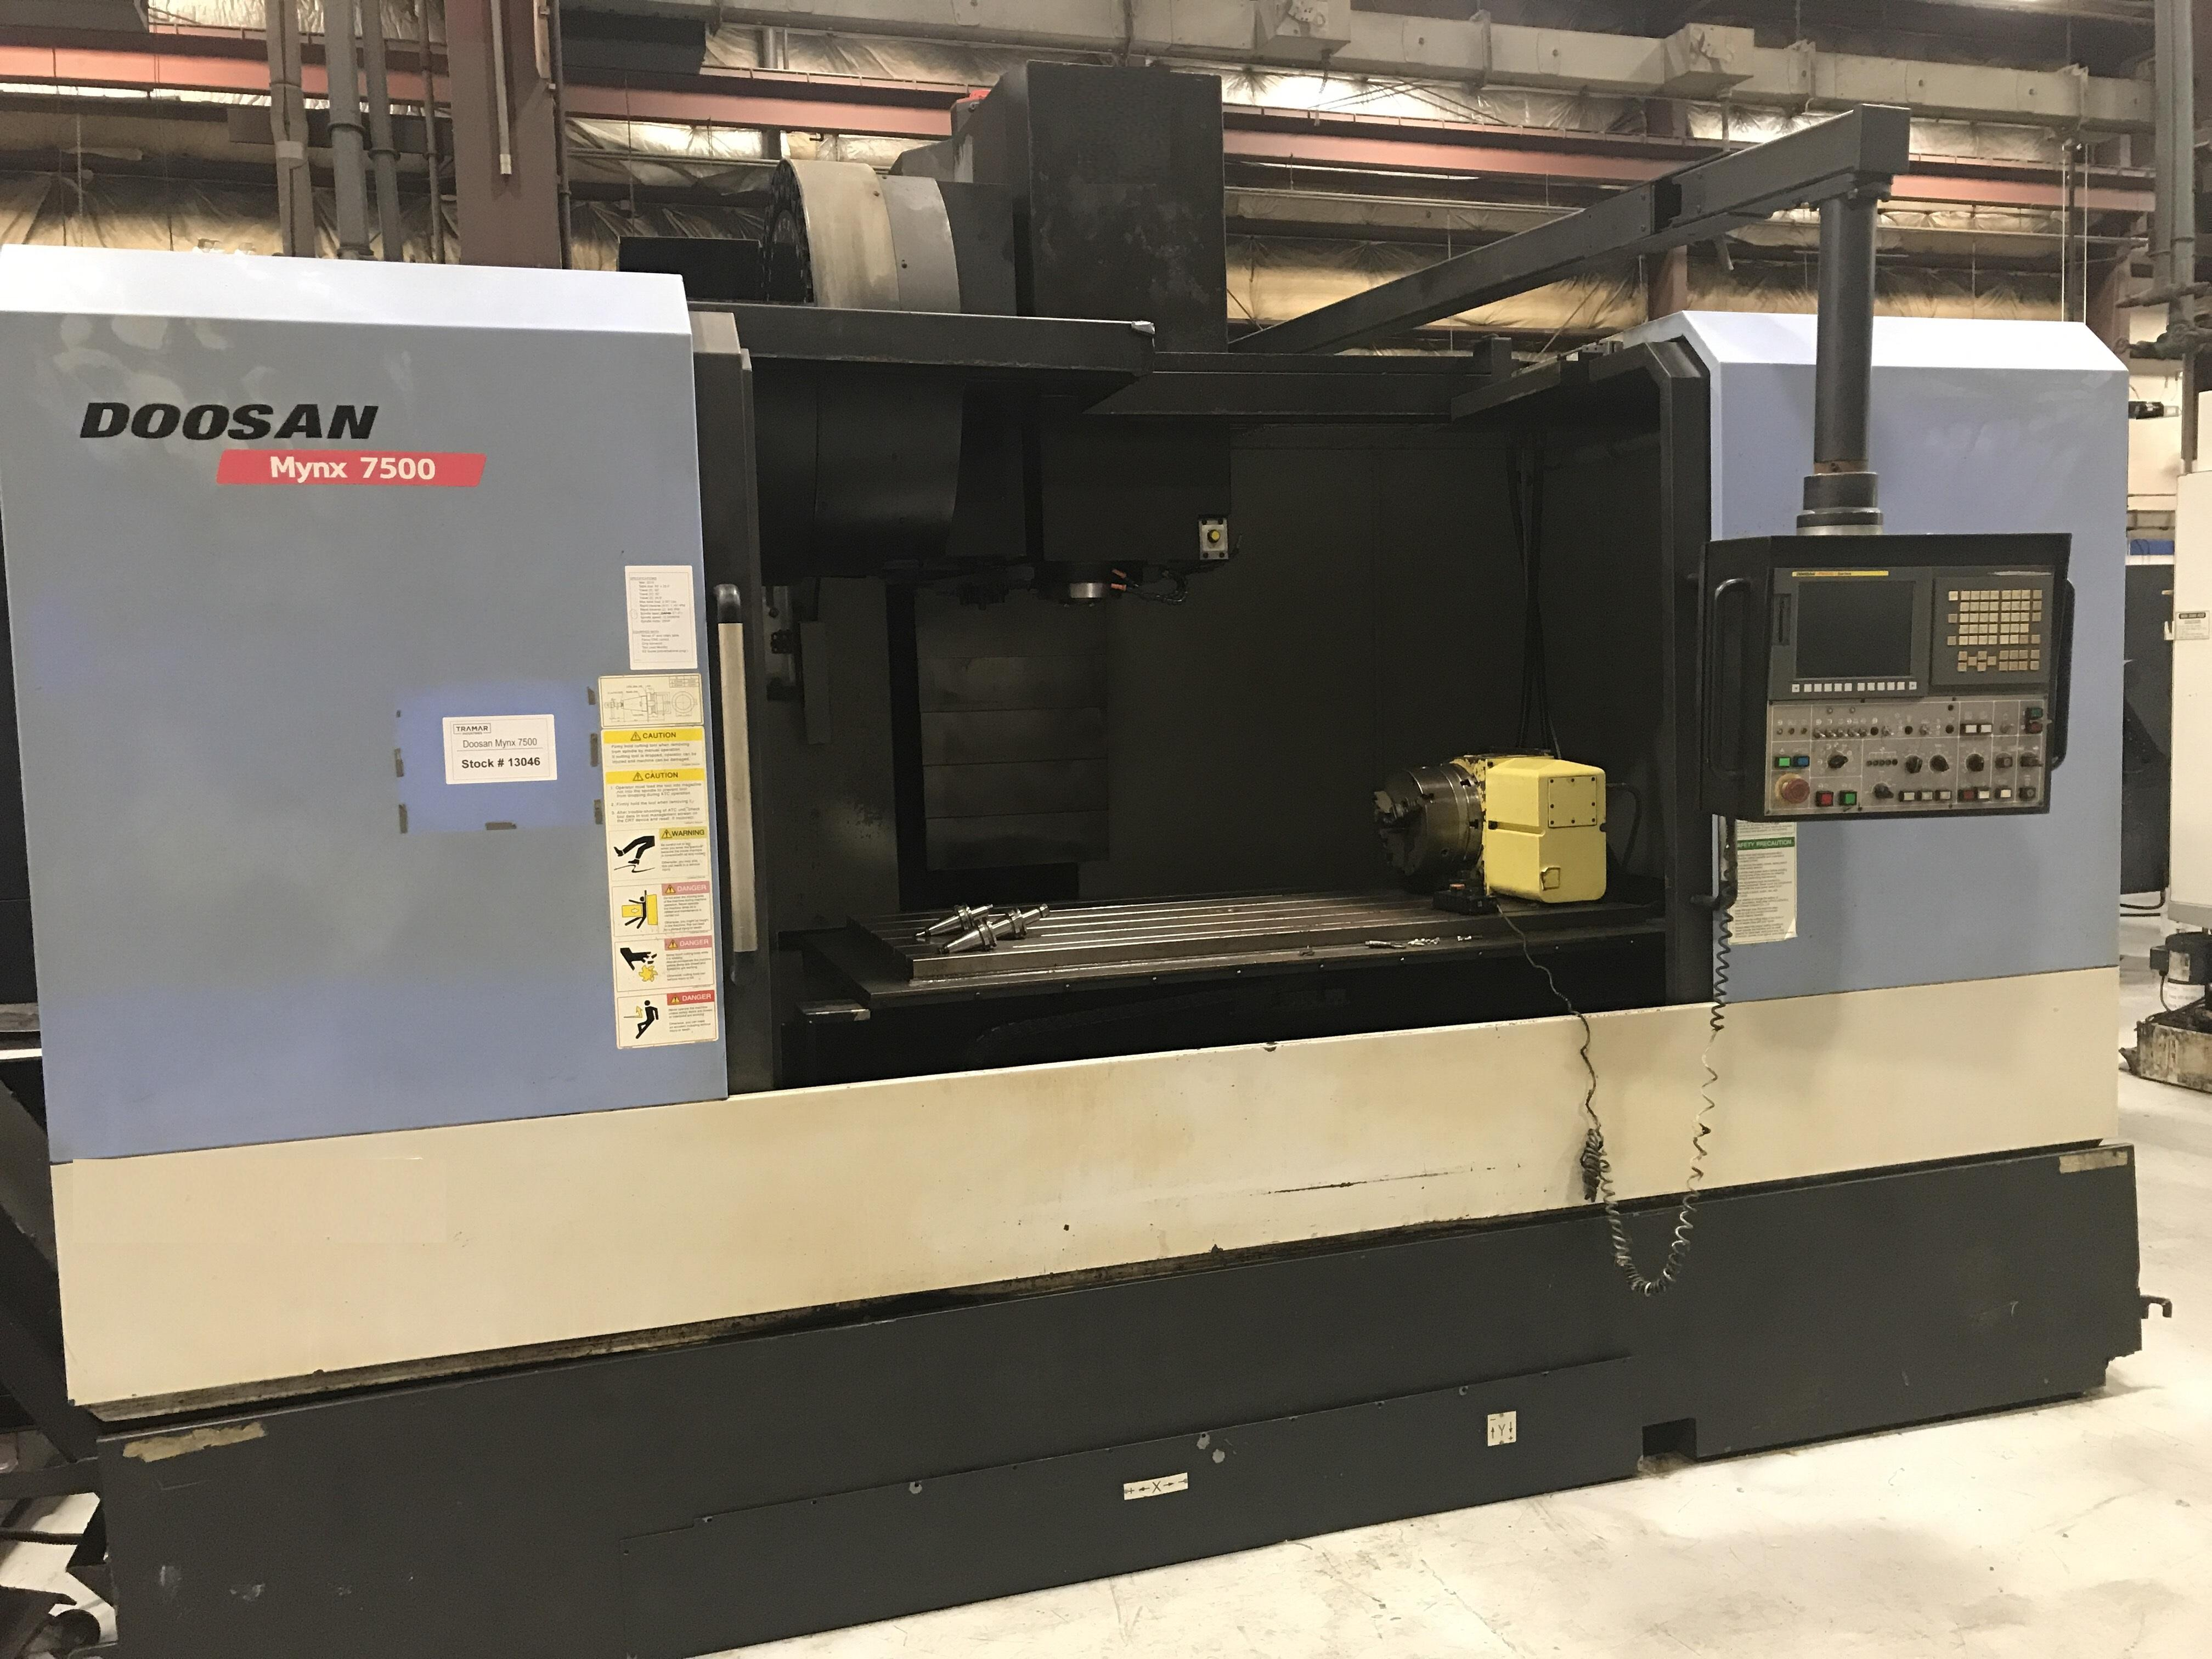 2010 DOOSAN Mynx 7500 - Vertical Machining Center